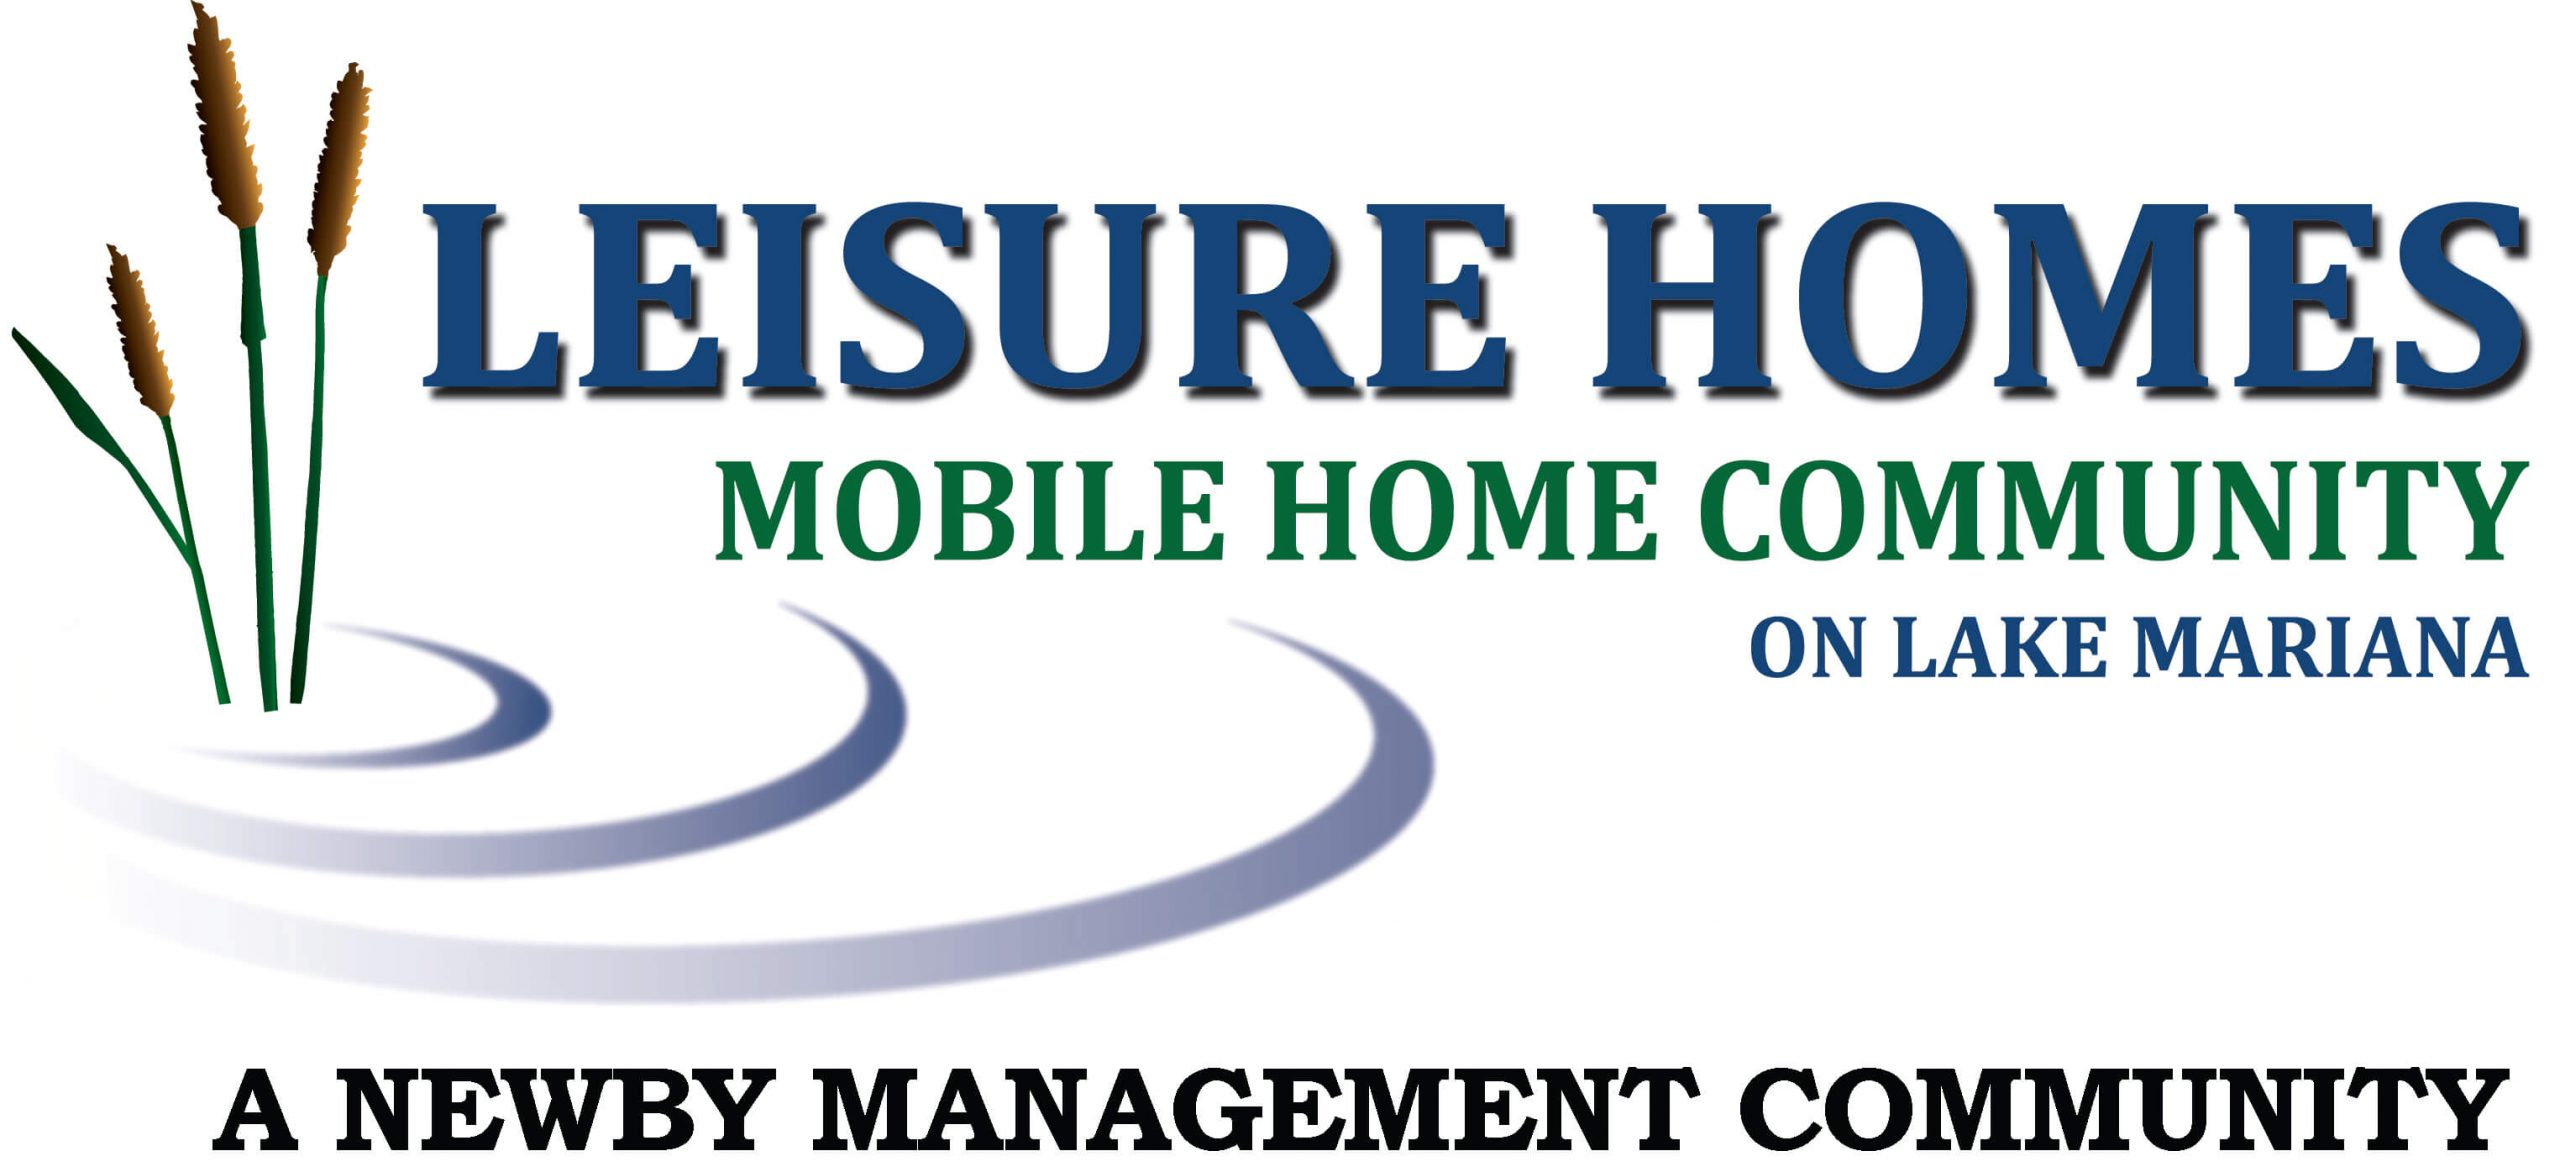 Leisure Homes